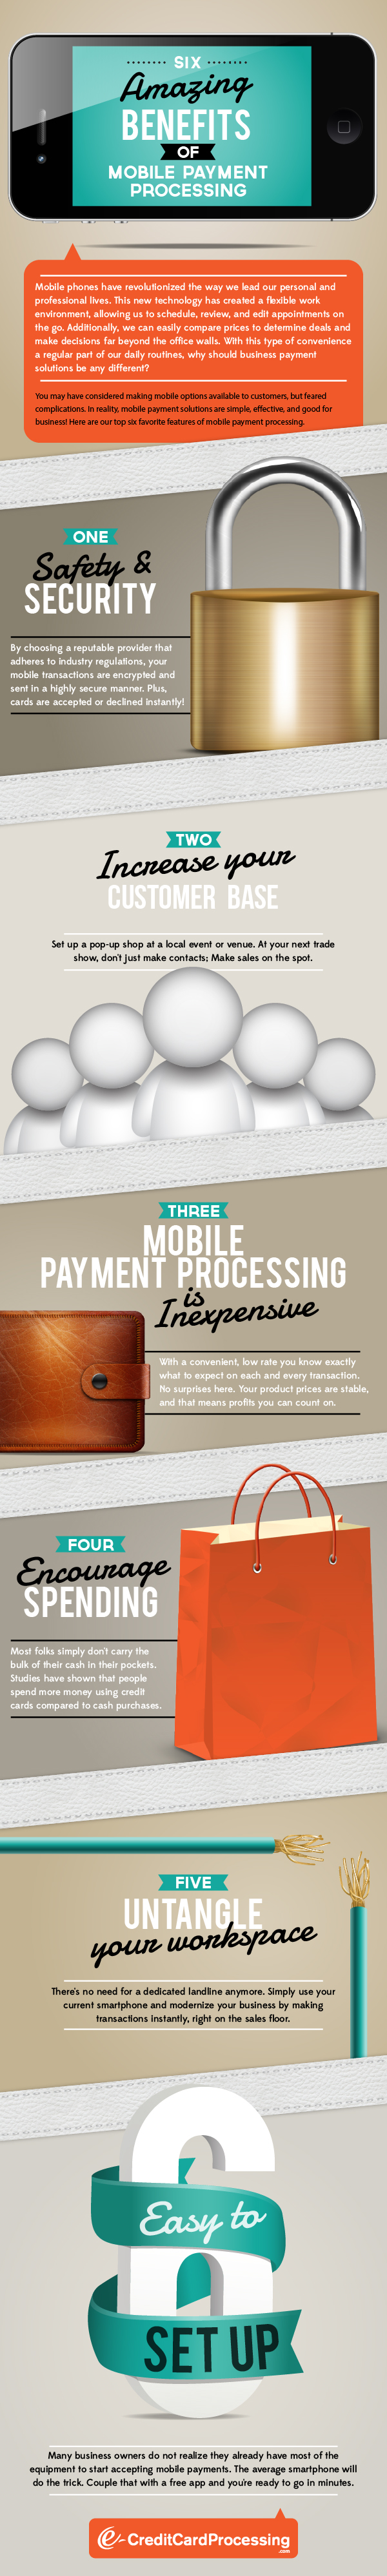 mobile-payment-processing-infographic